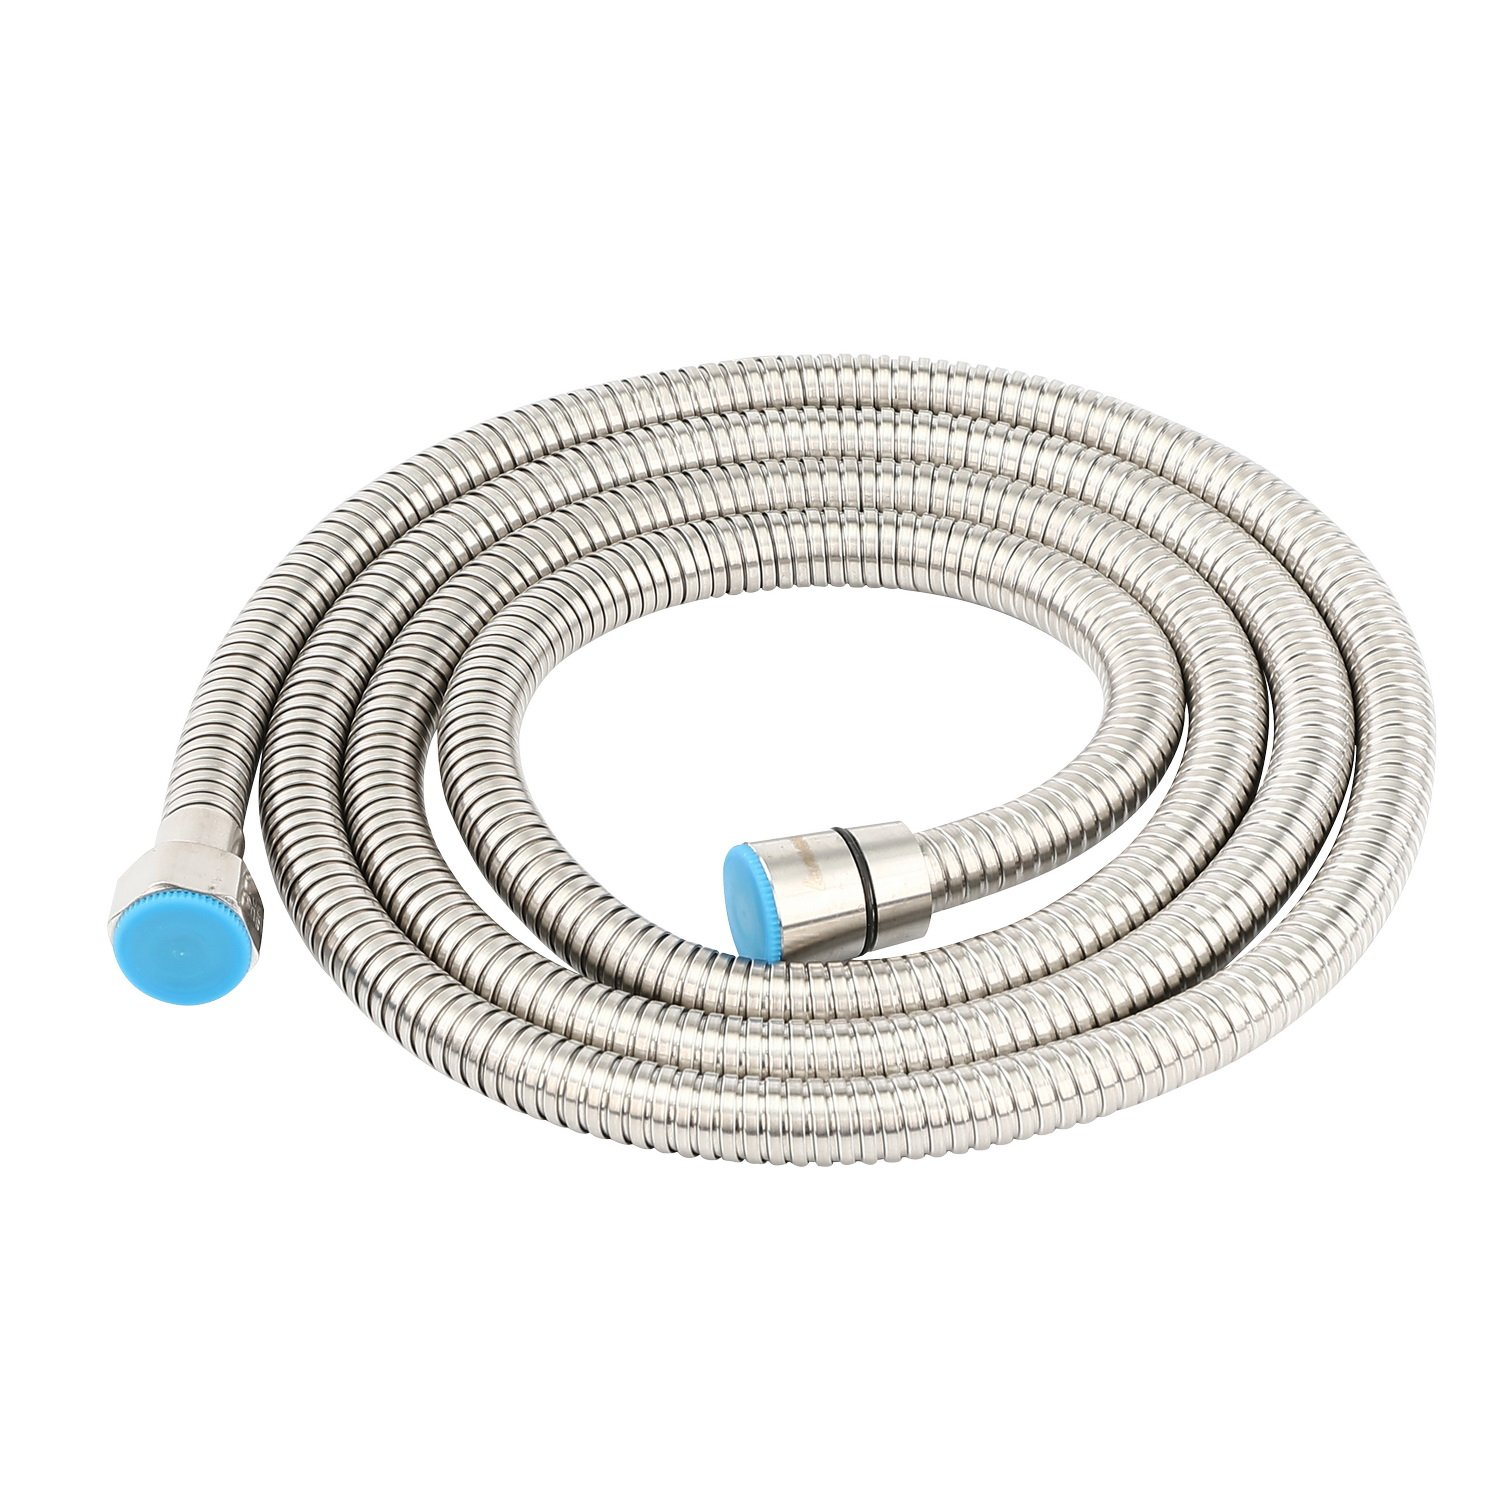 Lansan 304 Stainless Steel Handheld Shower Hose Replacement 78 Inches (2 Meters)